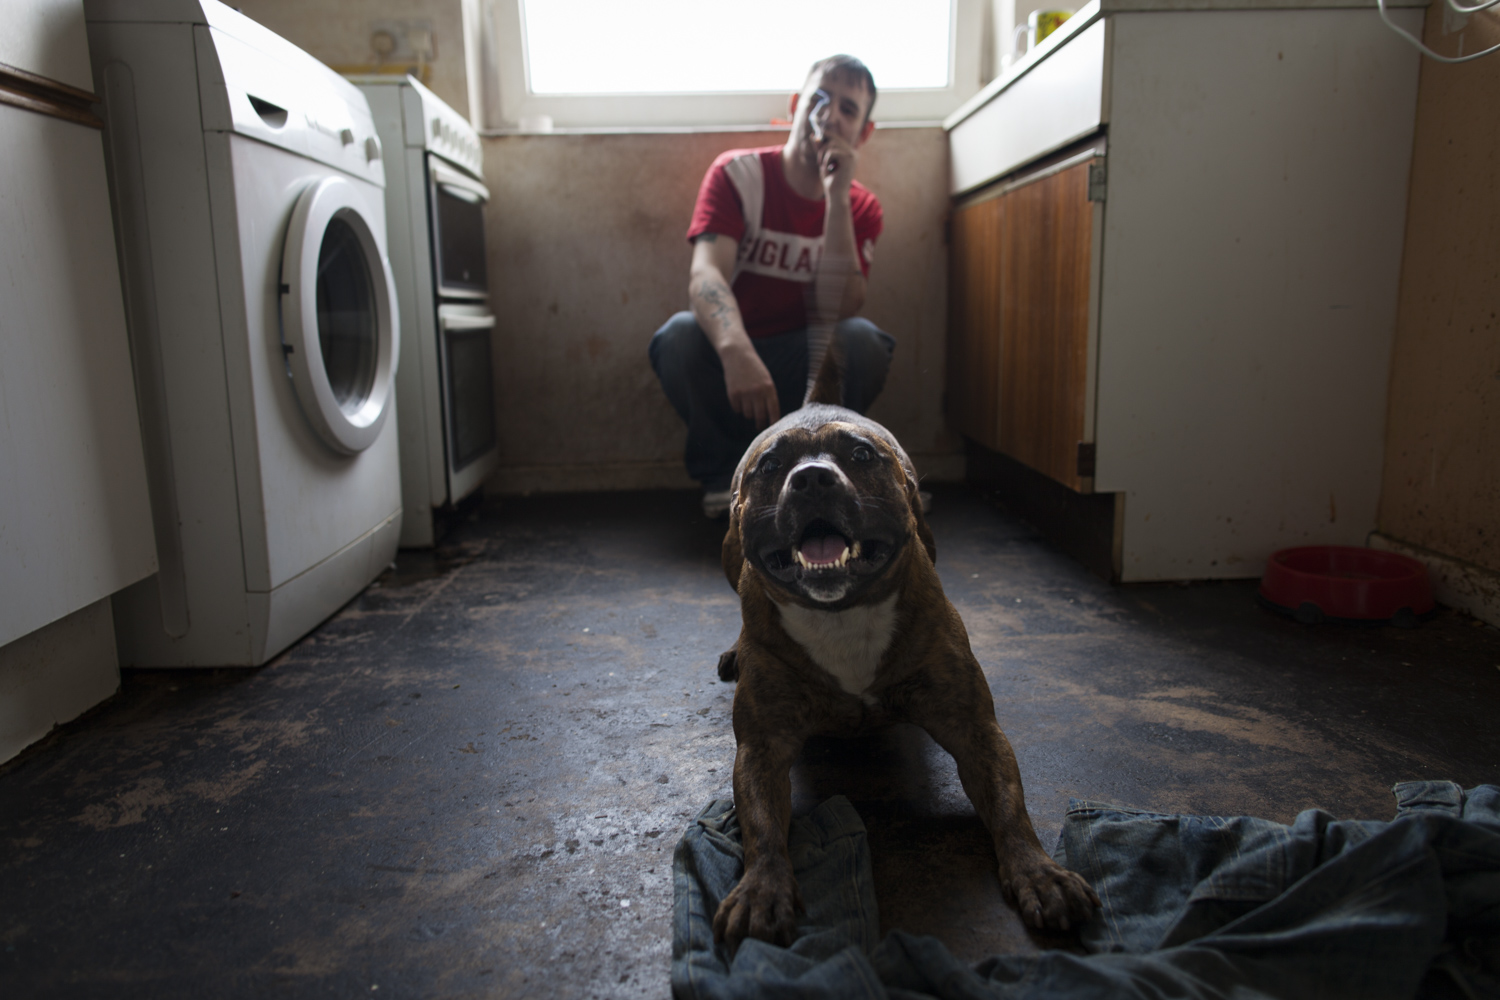 Sean with his dog in the kitchen of his flat. The dog spent practically the whole time locked in the house. As soon as anyone arrived it went crazy with excitement.